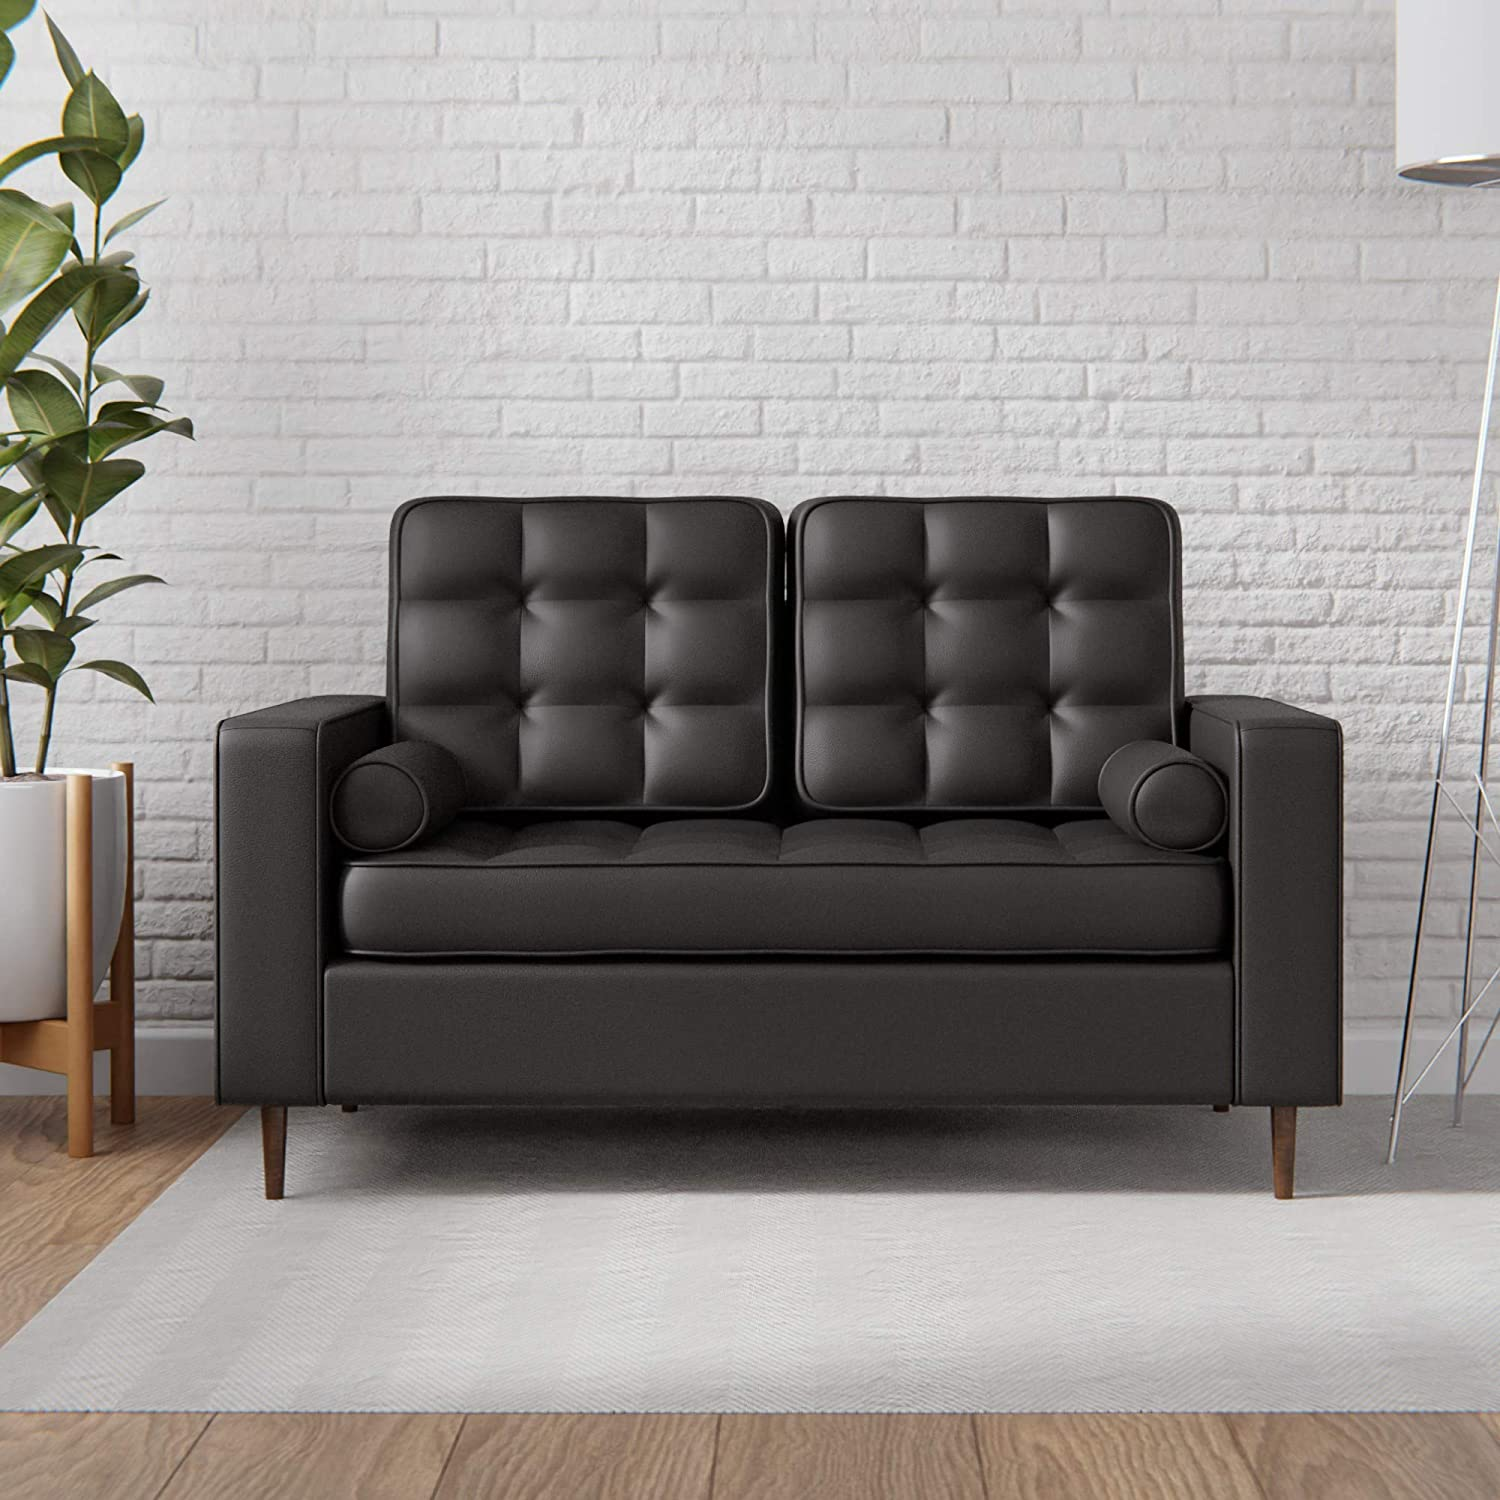 Edenbrook Lynnwood Upholstered Loveseat with Square Arms and Tufting-Bolster Throw Pillows Included, Faux Black